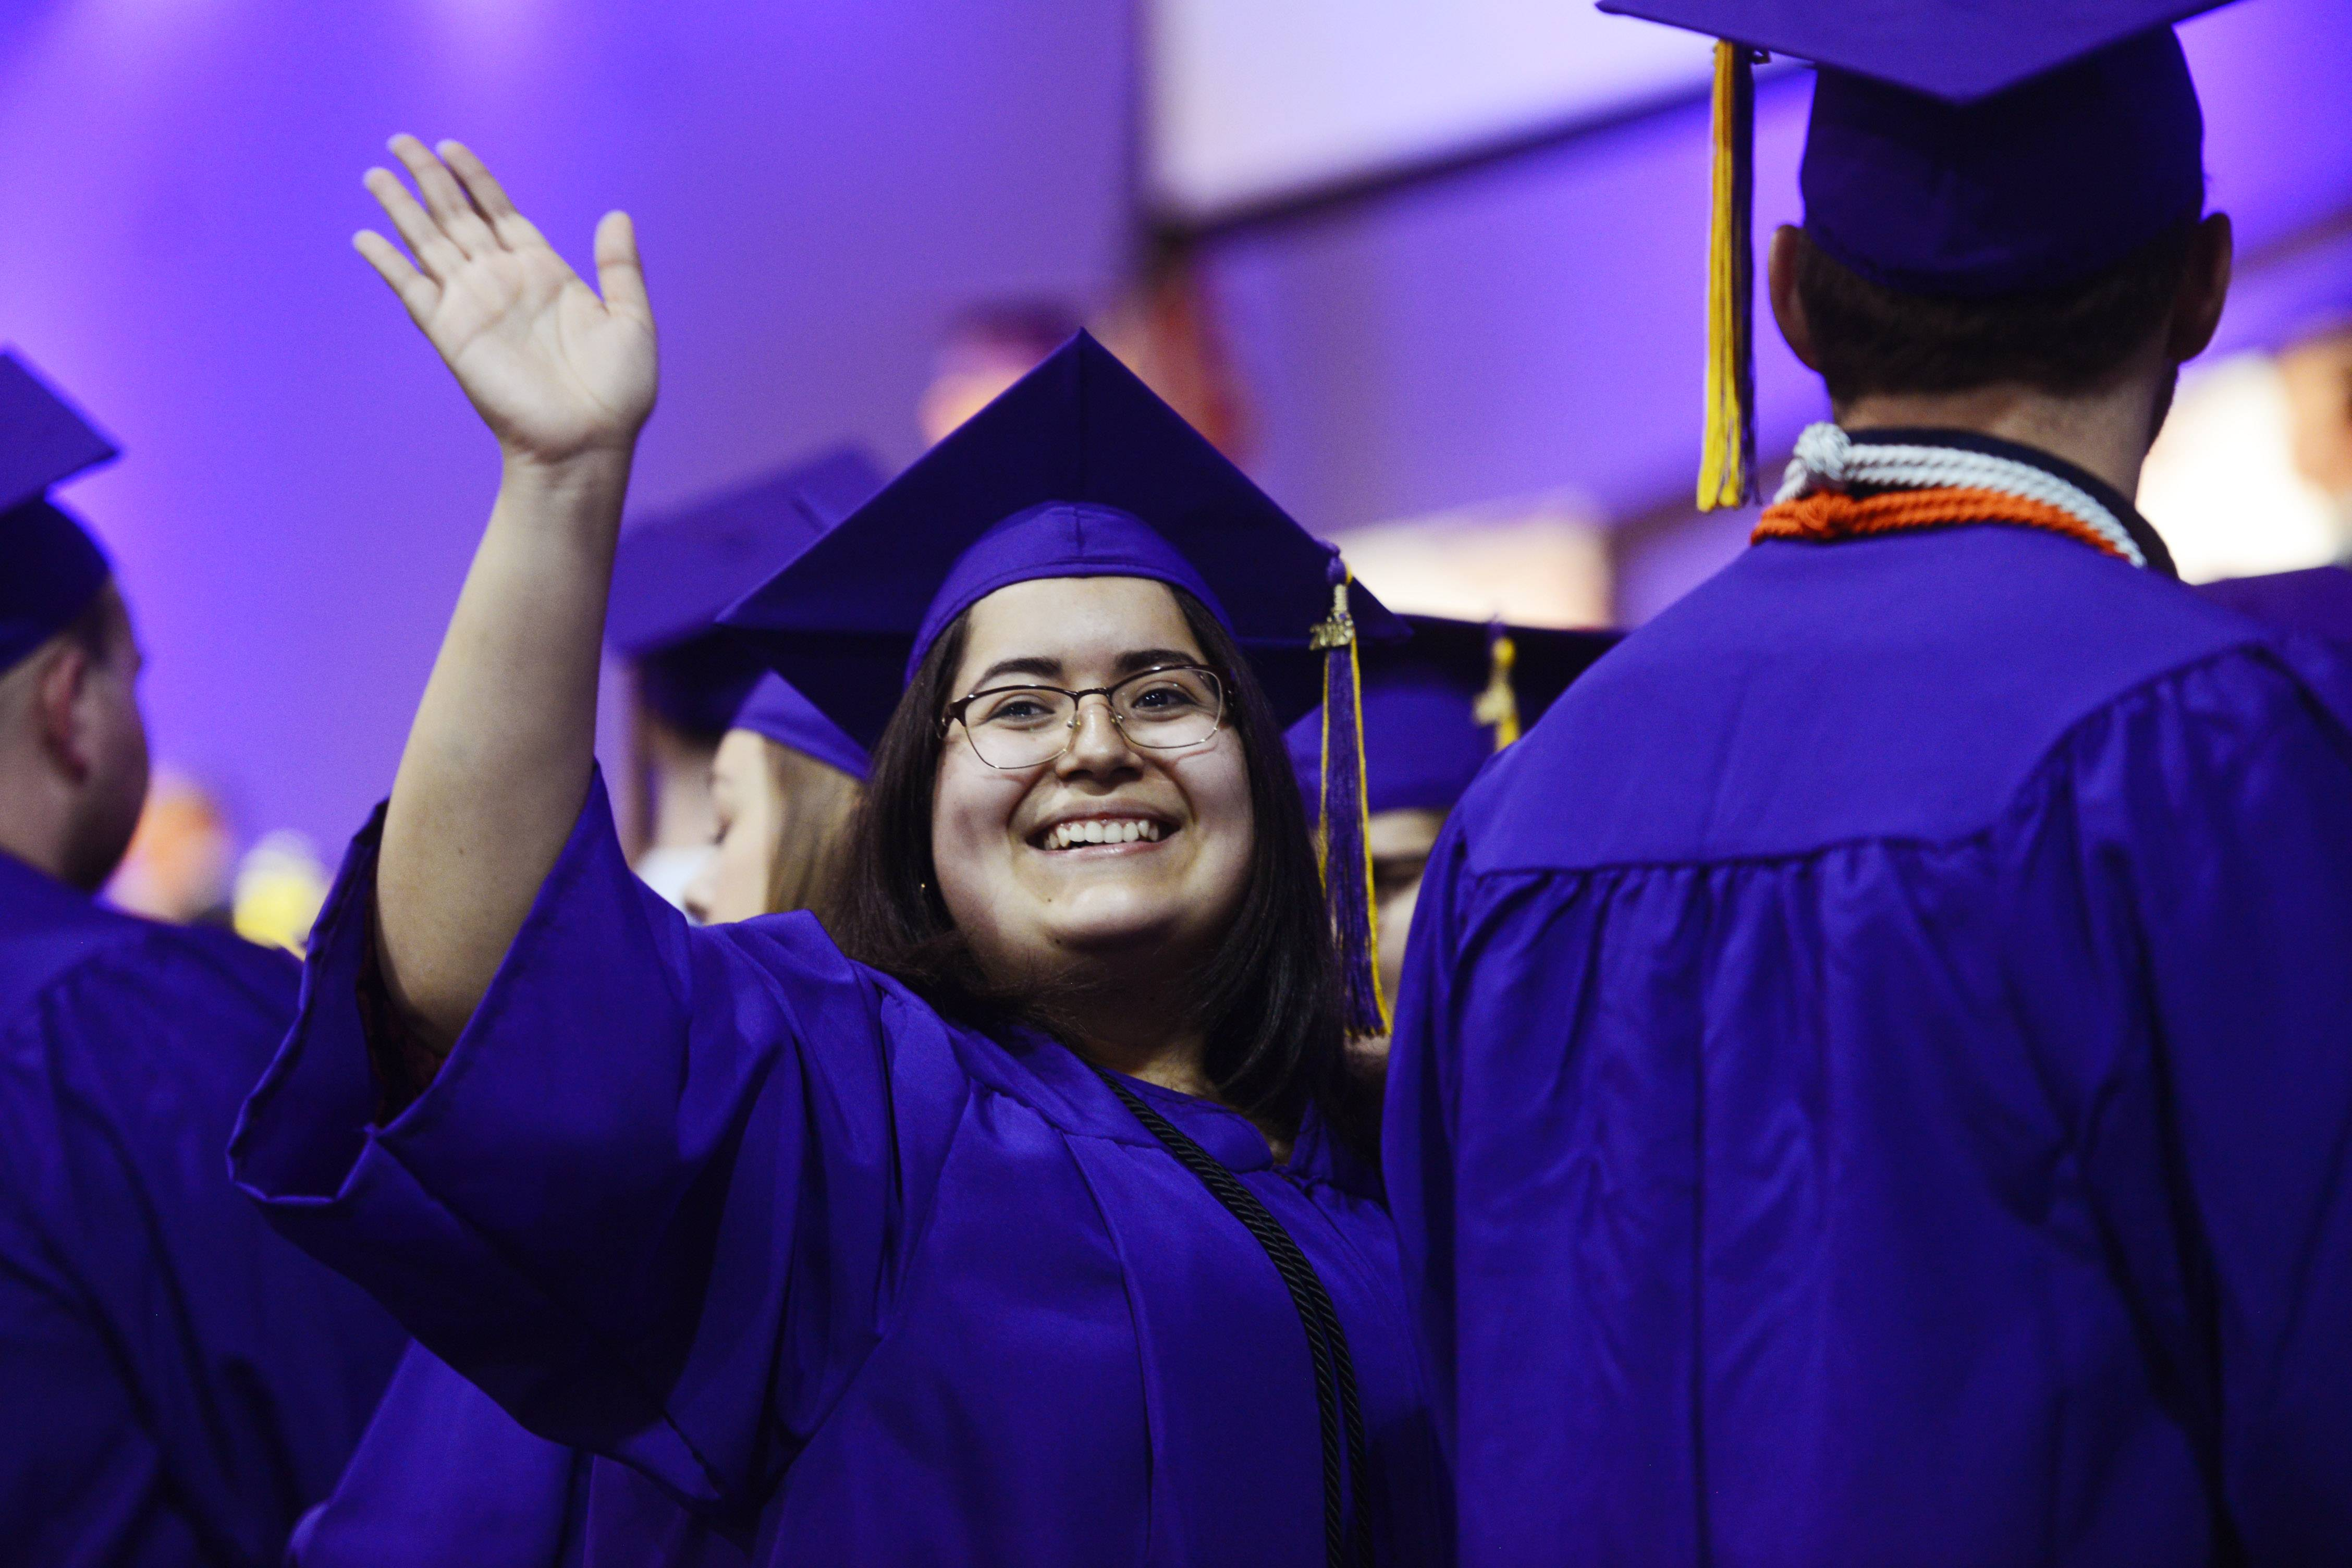 Angelica Diaz waves during the processional during the Wauconda High School graduation at the Quentin Road Bible Church in Lake Zurich Sunday.